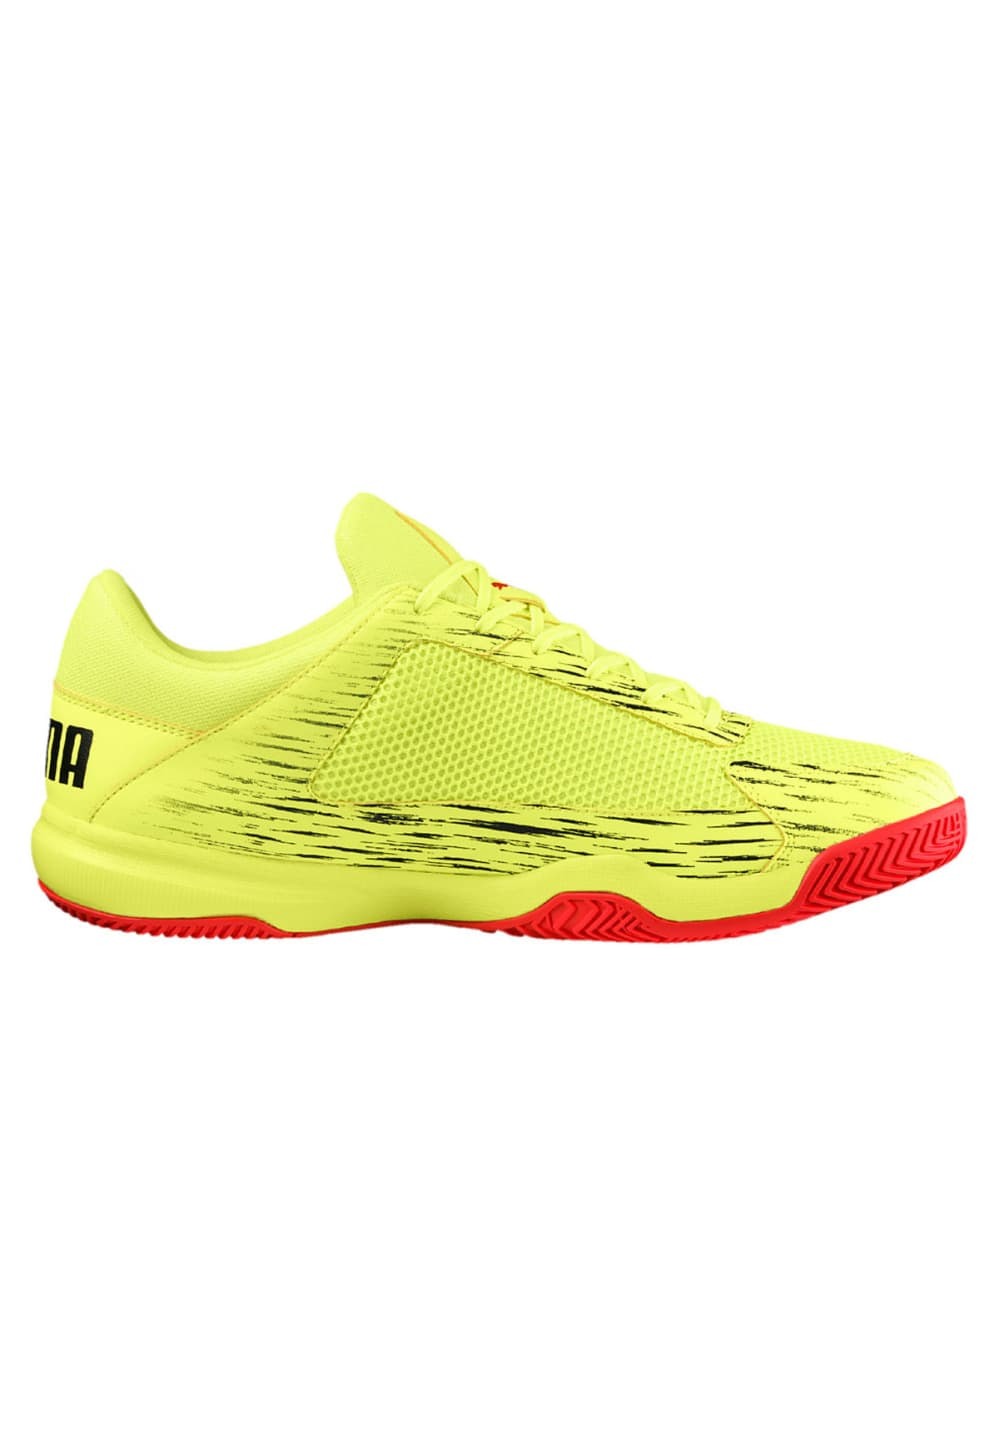 db3cd68651 Puma Evospeed Indoor Netfit Euro 5 - Indoor shoes - Yellow